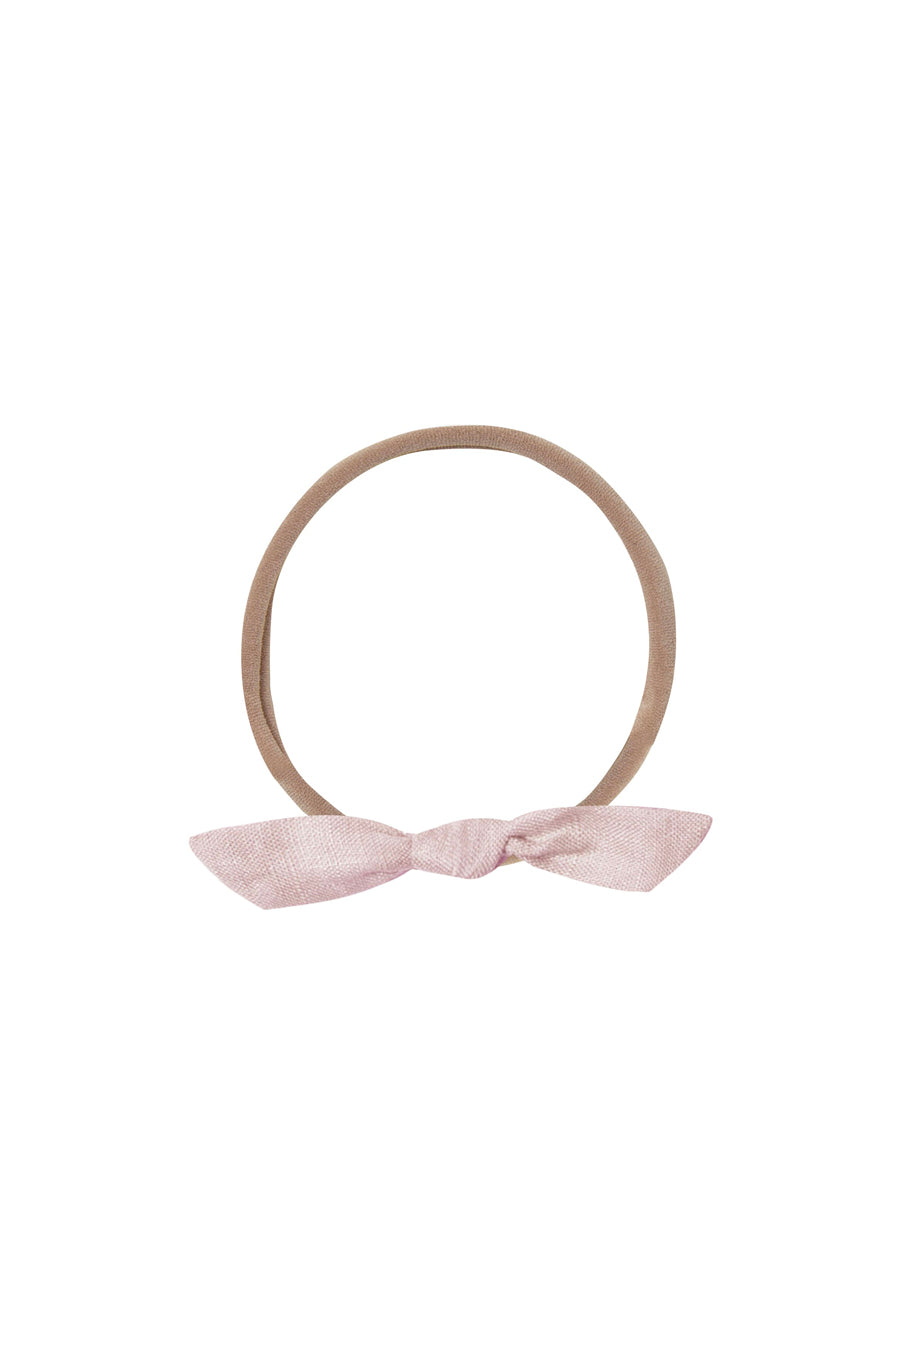 Rylee & Cru Little Knot Headband